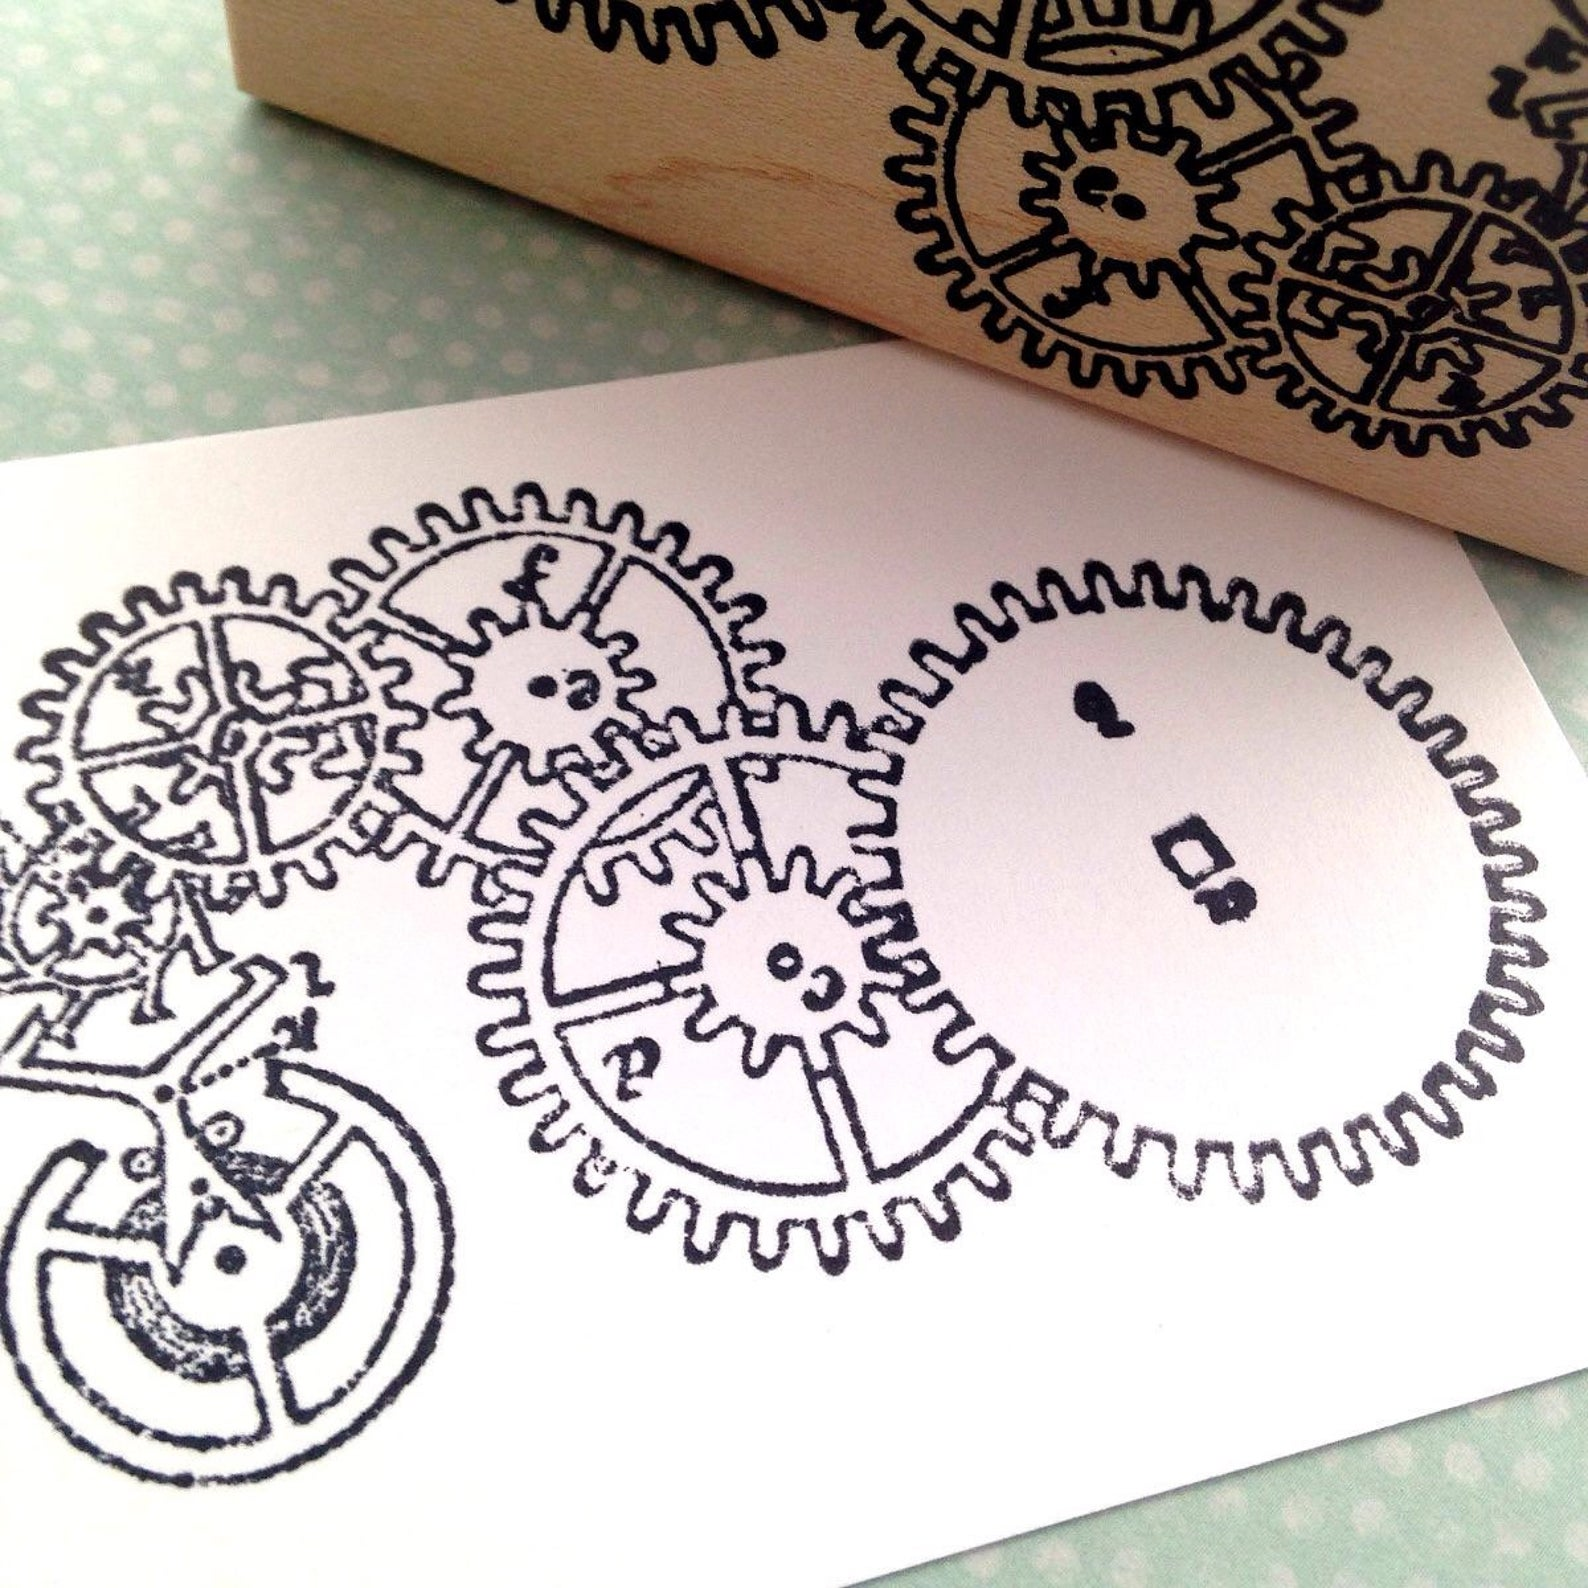 Steampunk Rubber Stamps and Papercraft Supplies